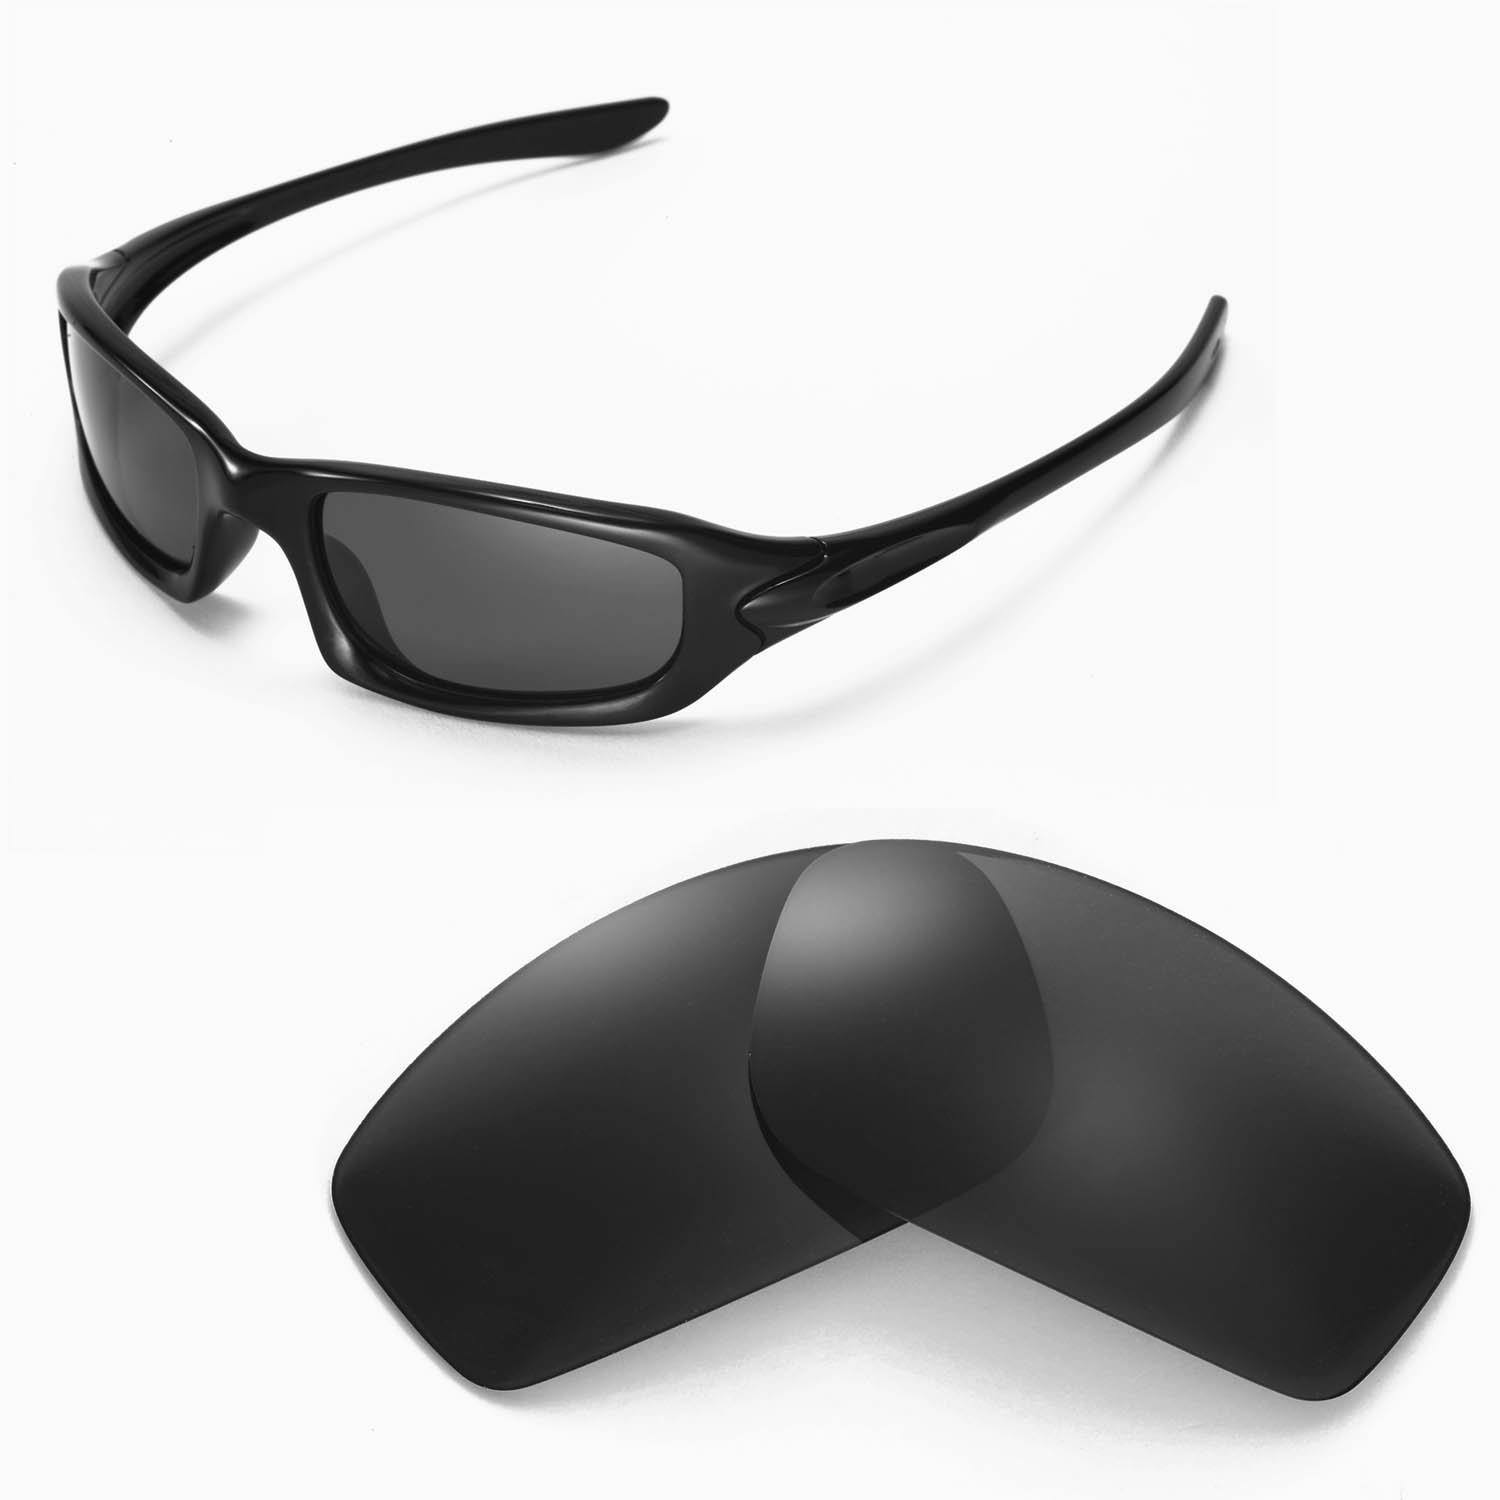 af15fe0d45 Details about New Walleva Polarized Black Replacement Lenses For Oakley  Fives 4.0 Sunglasses